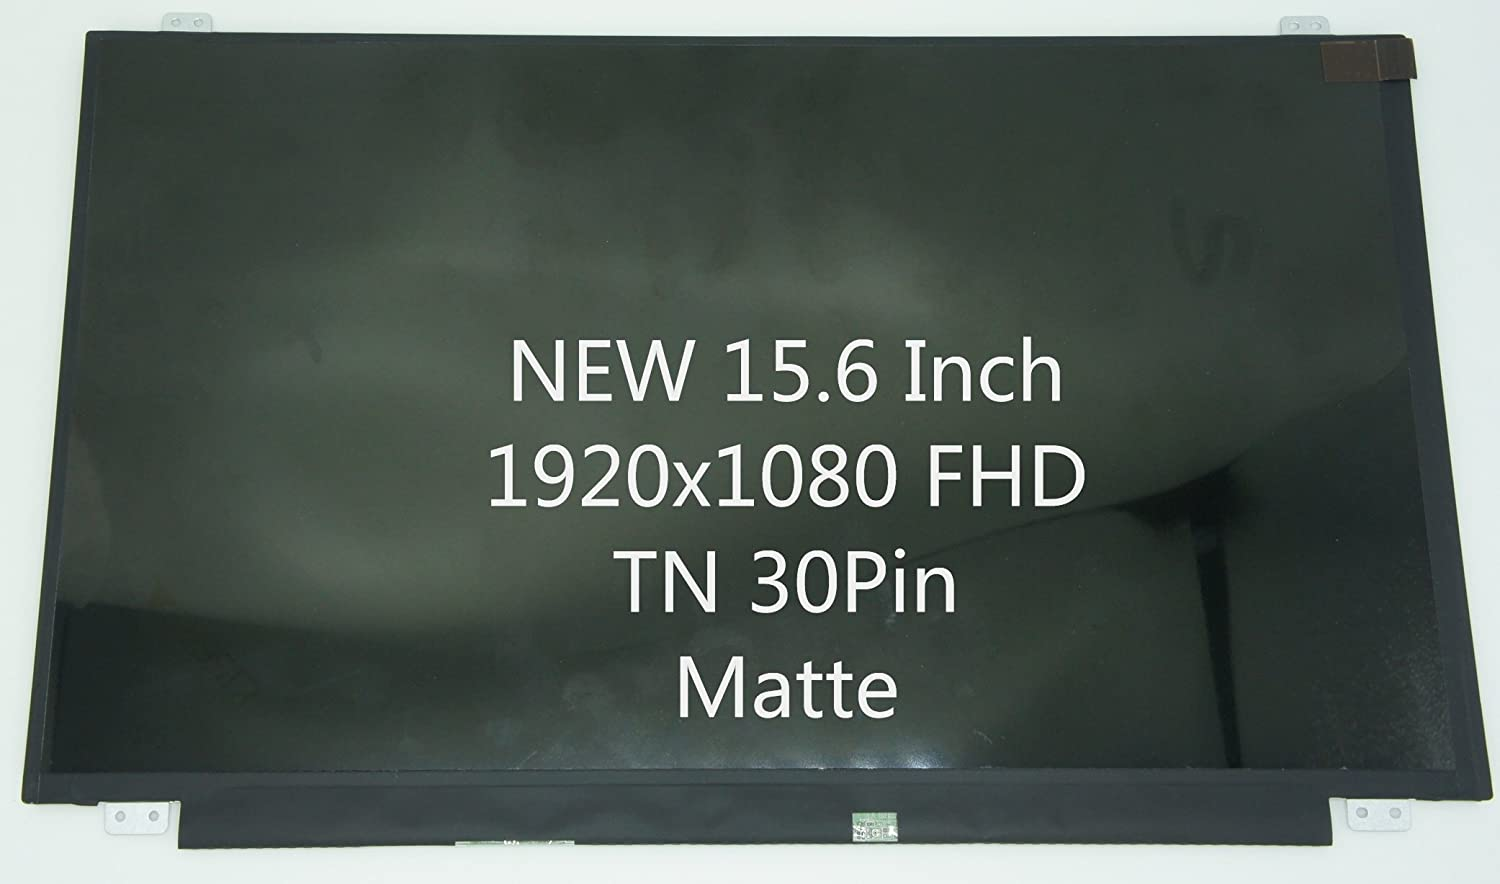 """New LCD Screen for NT156FHM-N41 V8.0 8.1 FHD 1920x1080 Matte Display 15.6/"""""""